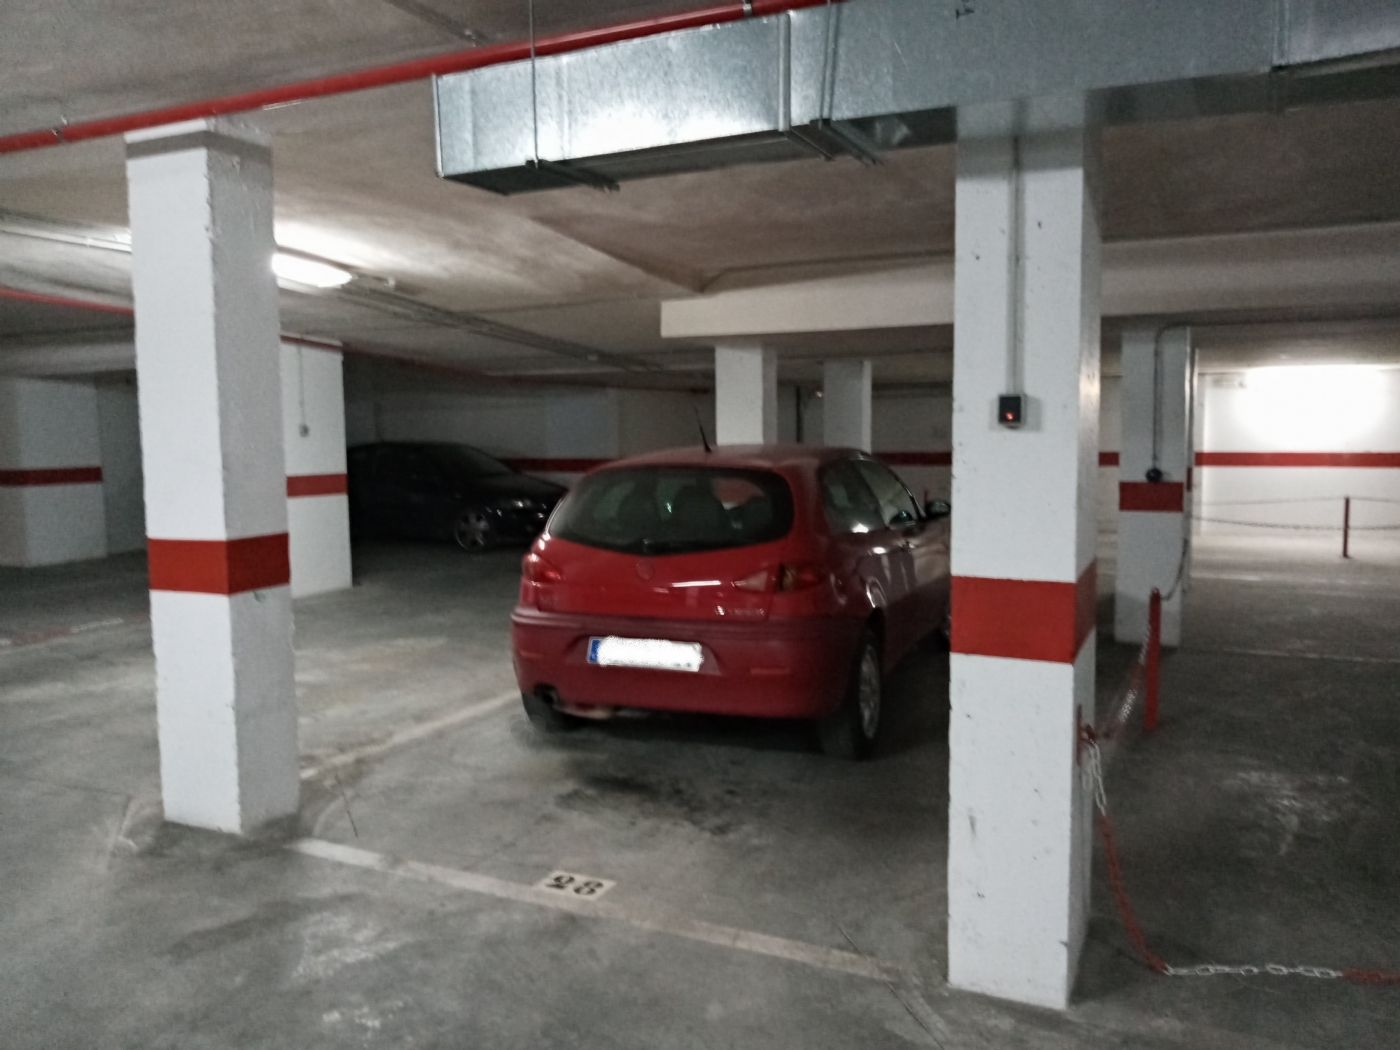 Parking voiture à Calle dean don antonio sala, 9. Plaza de garaje en sant joan alicante